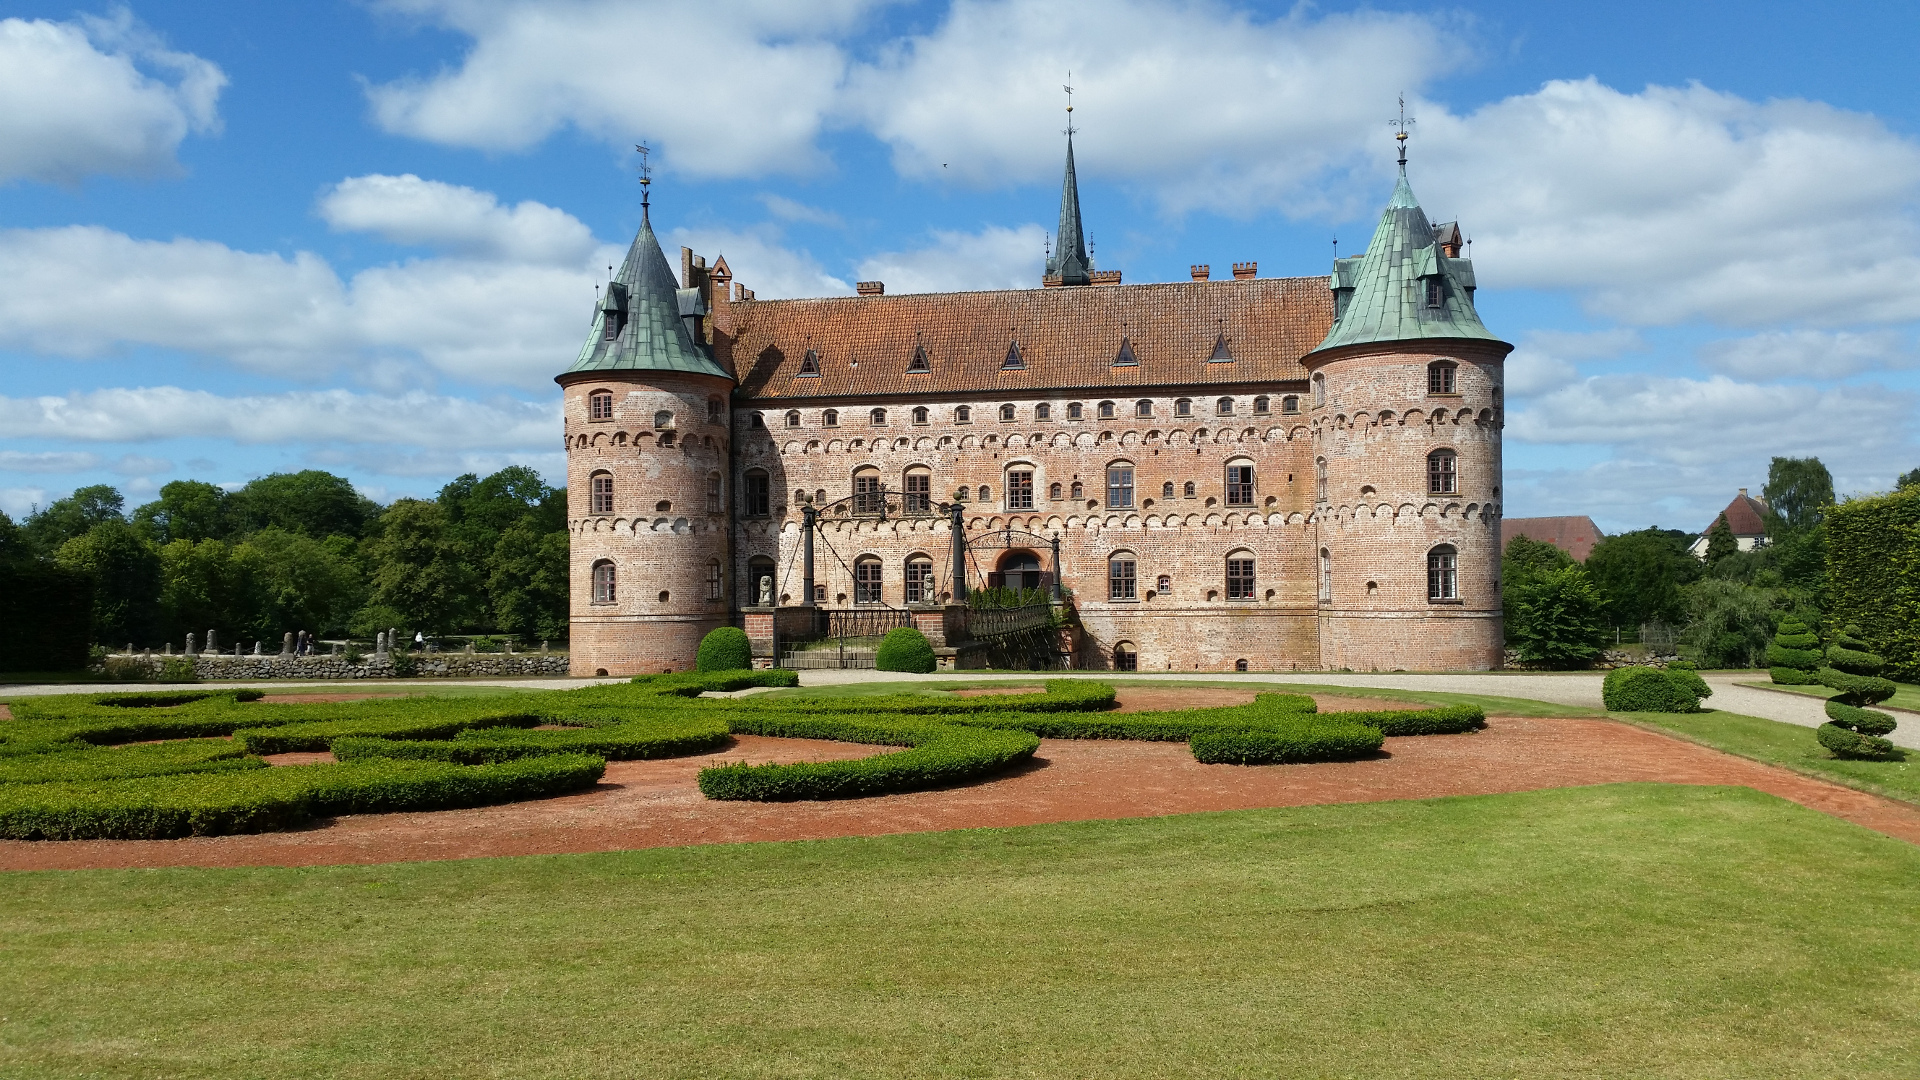 Egeskov castle from the side